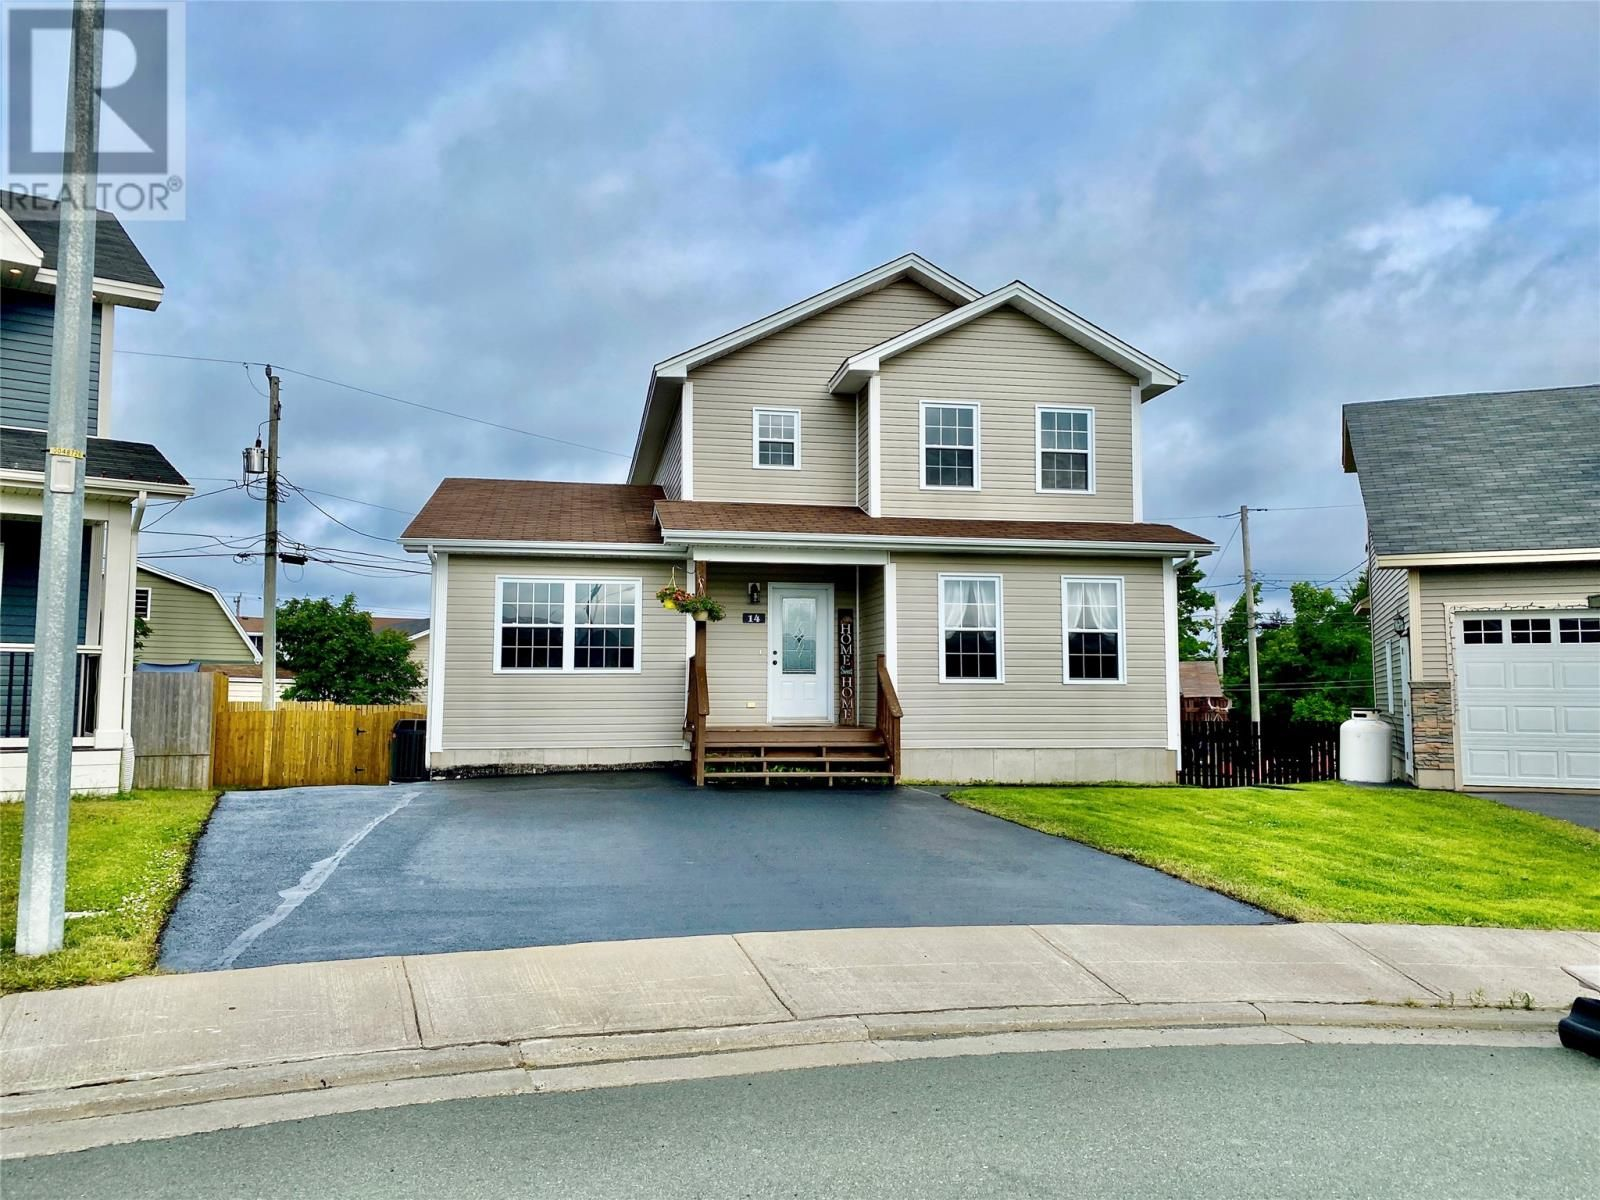 Main Photo: 14 Kadan Place in Conception Bay South: House for sale : MLS®# 1237690